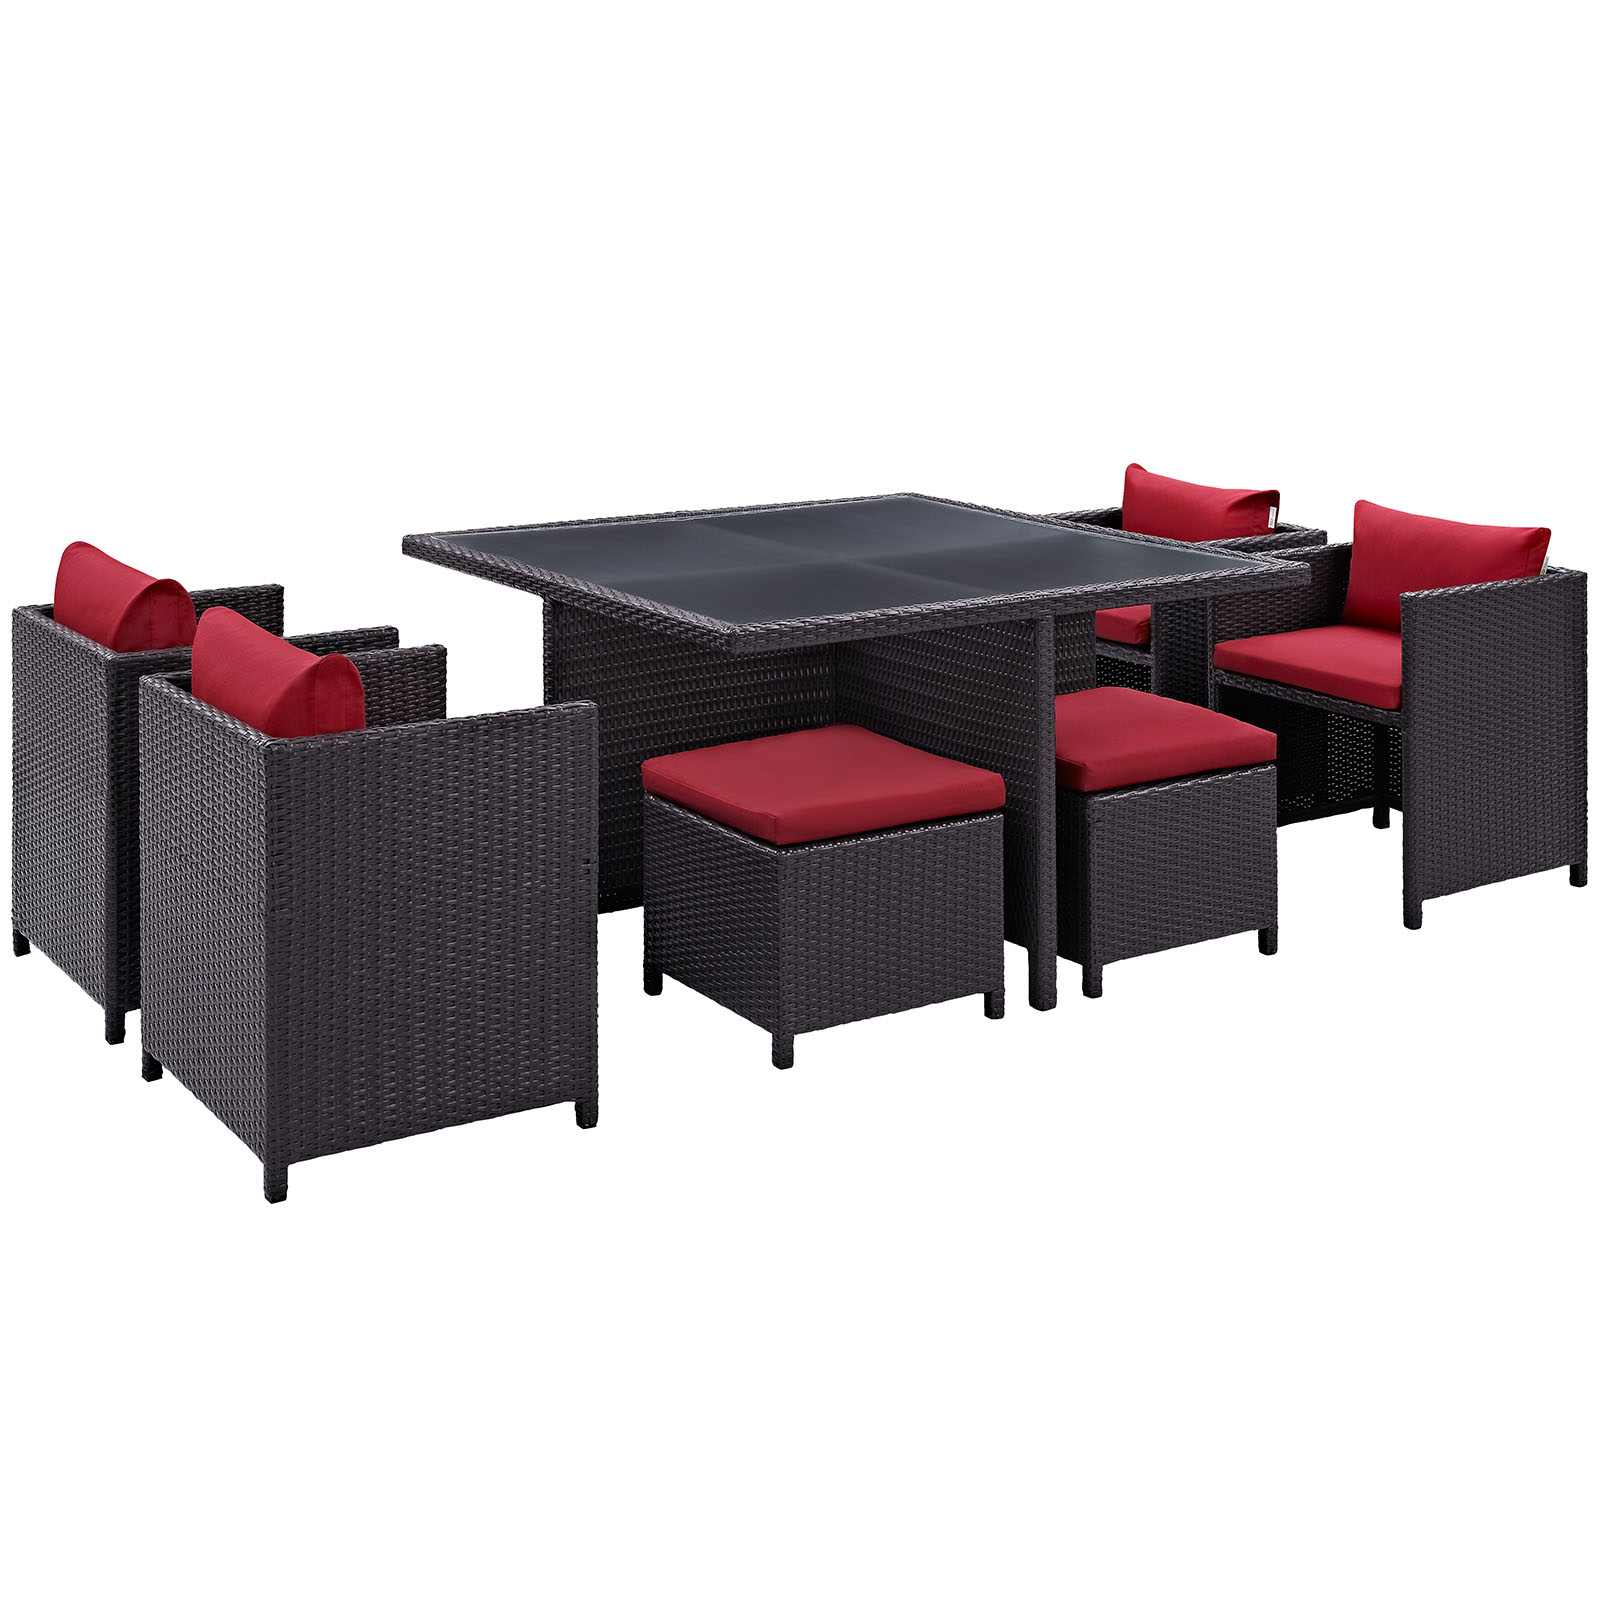 Modern Contemporary 9 Pcs Outdoor Patio Dining Room Set, Red Plastic by